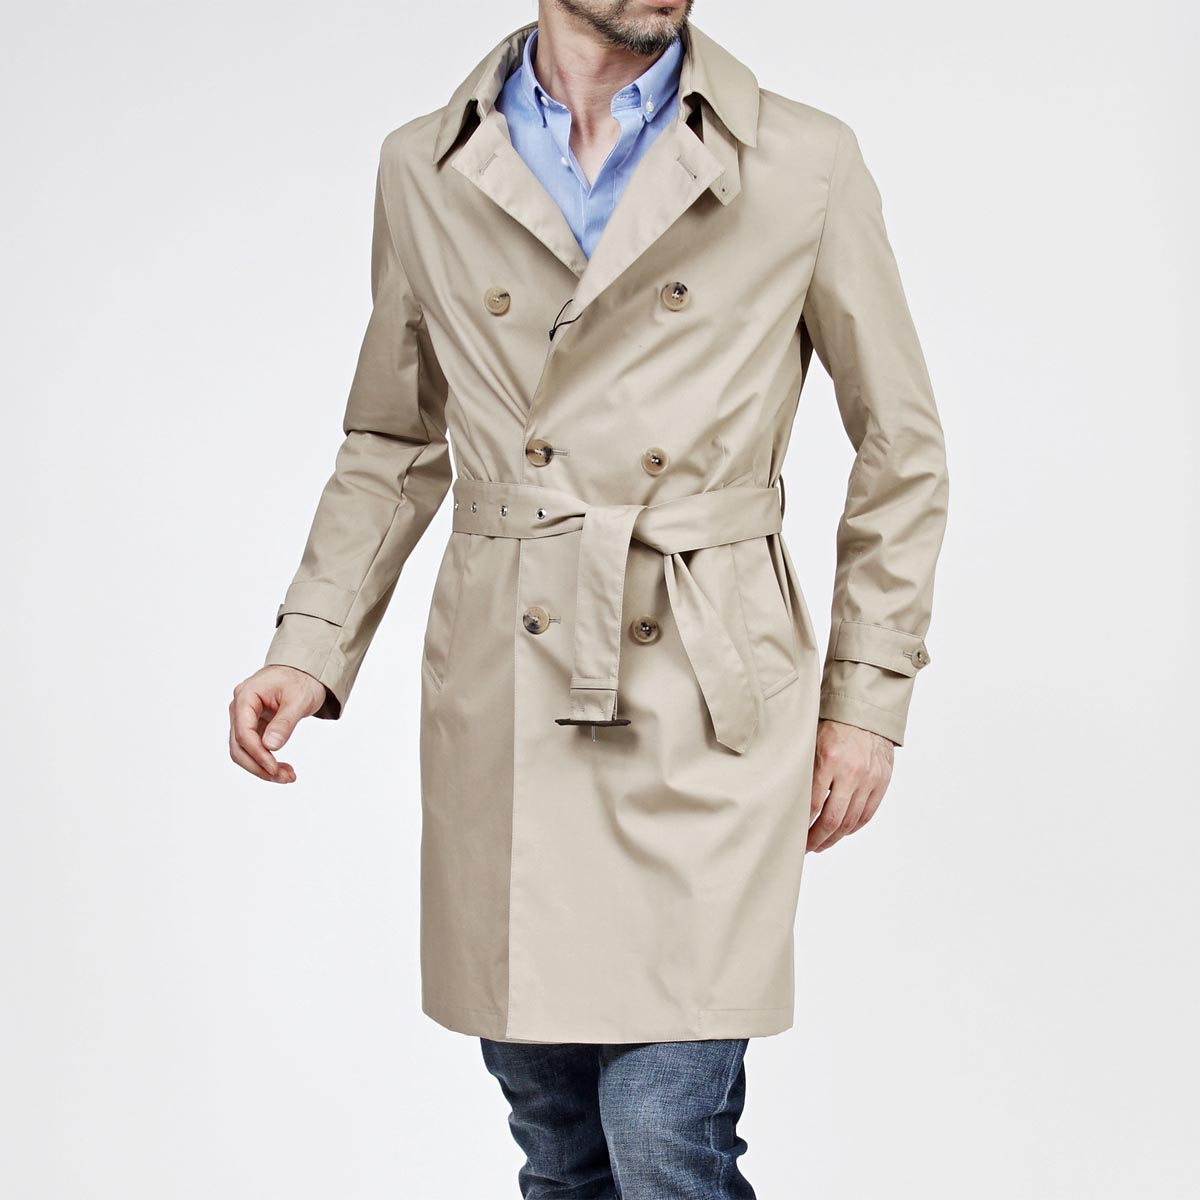 Macintosh - This coat is named after Charles Macintosh from Scotland. It doesn't have any tartan, surprisingly.